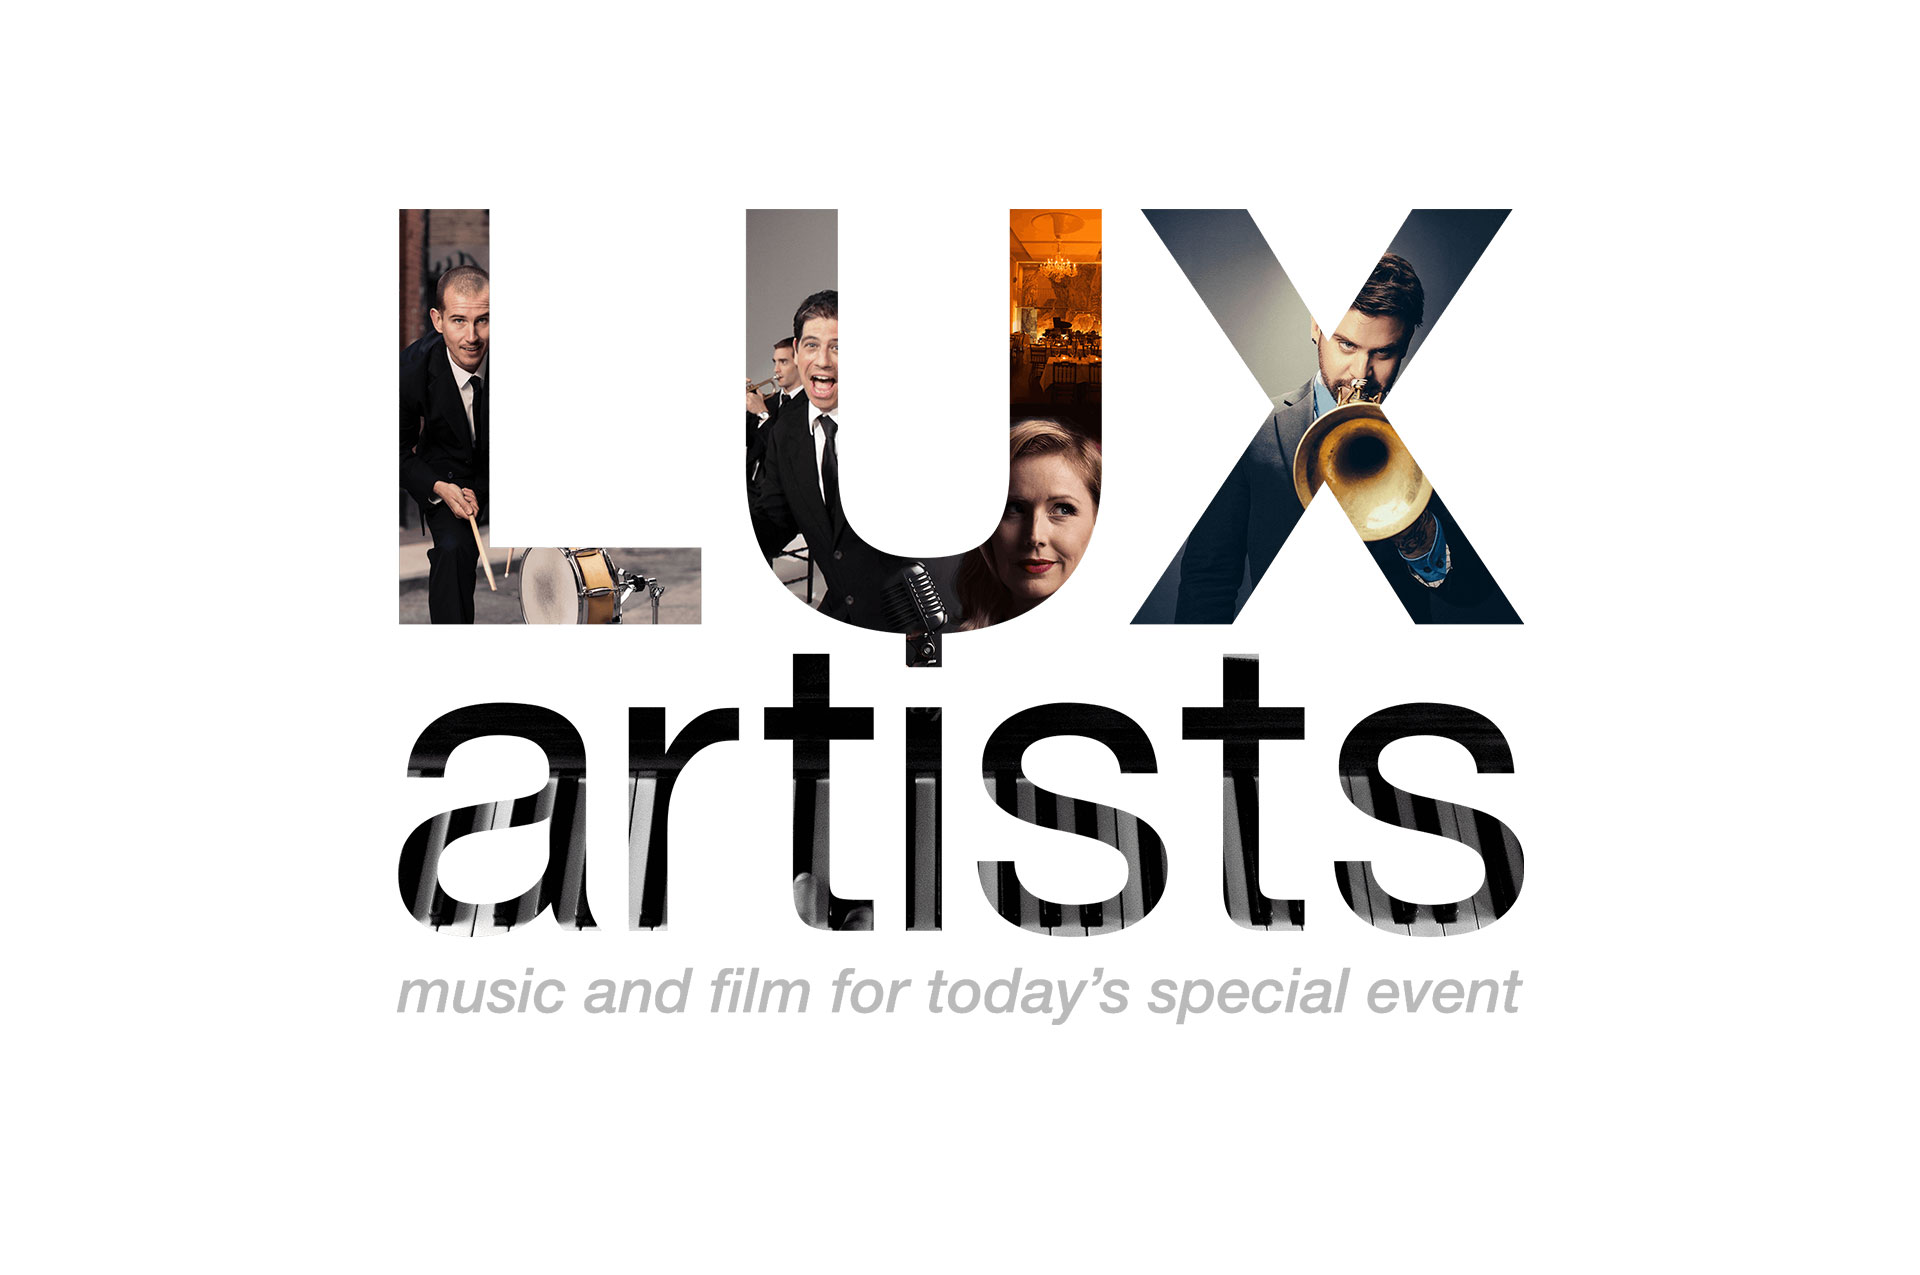 lux artists u2013 music and film for today u0027s special event